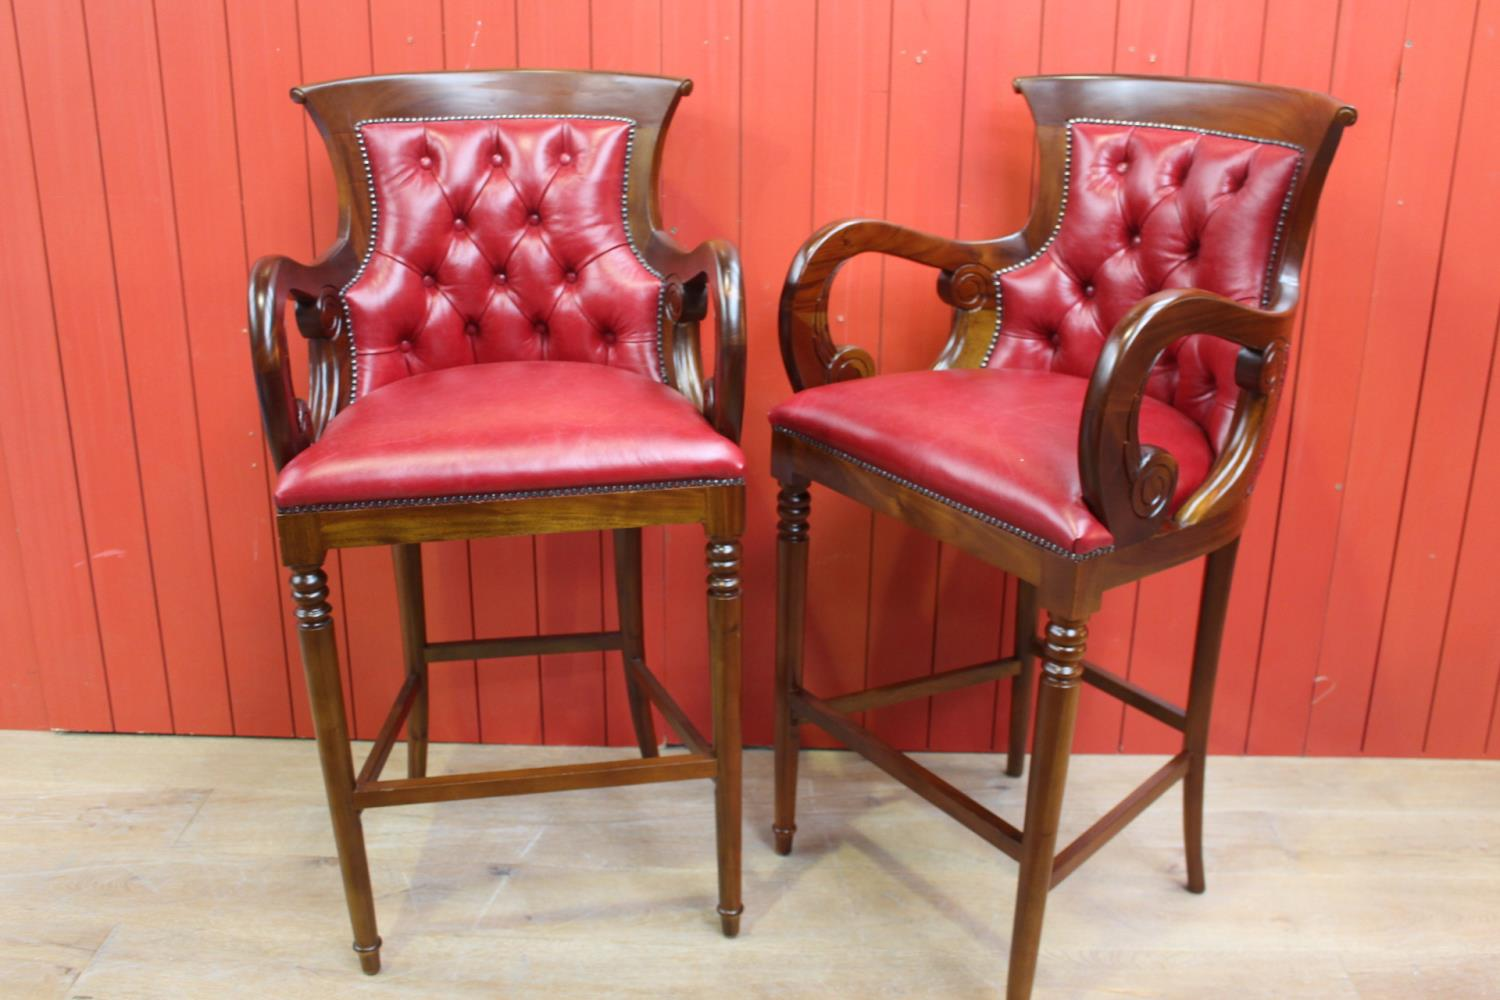 Pair of upholstered high stools